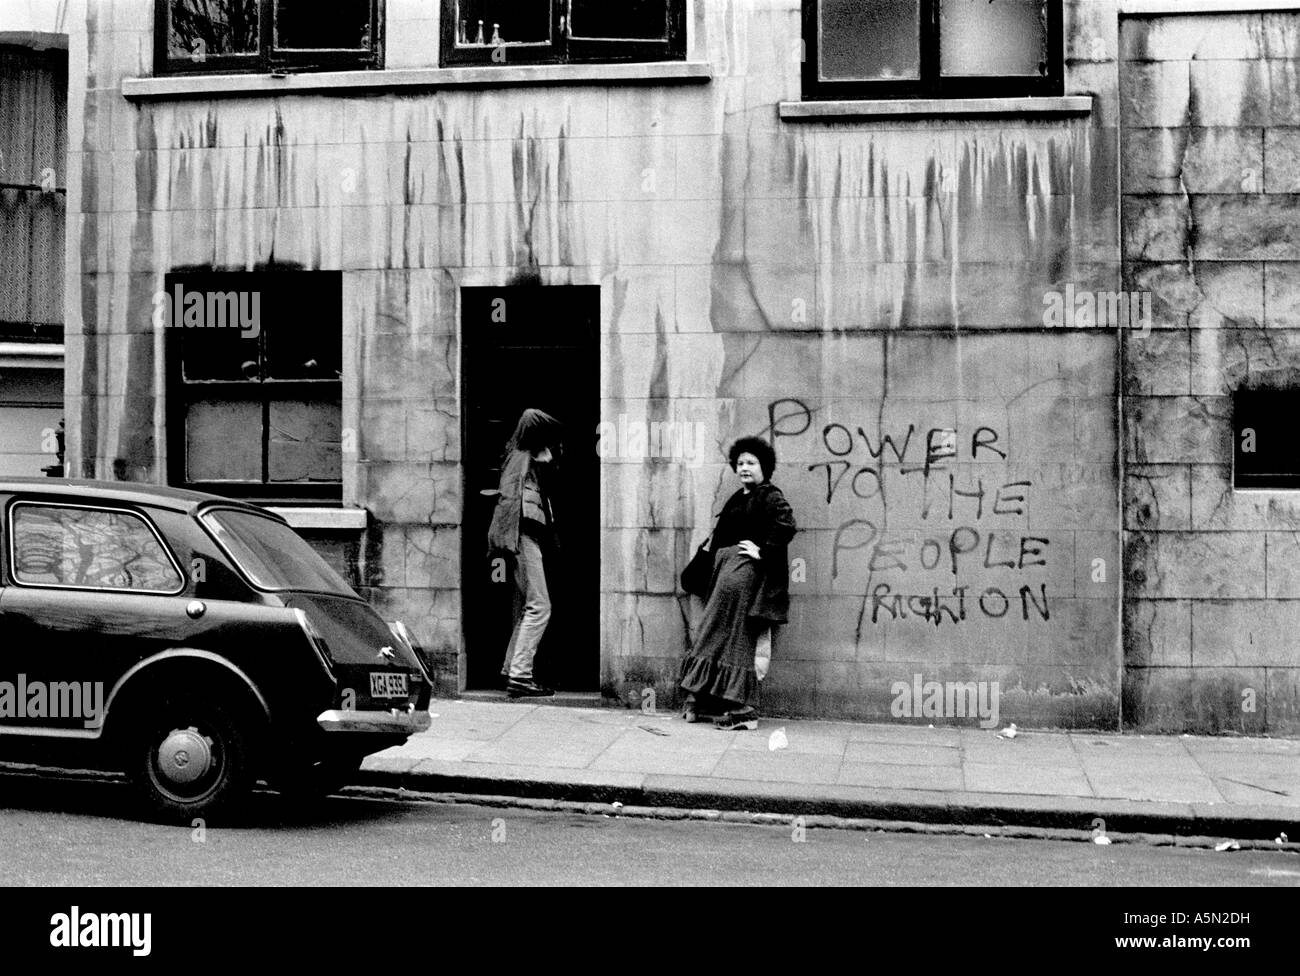 Hippies in Notting Hill Gate in the early 1970's. - Stock Image